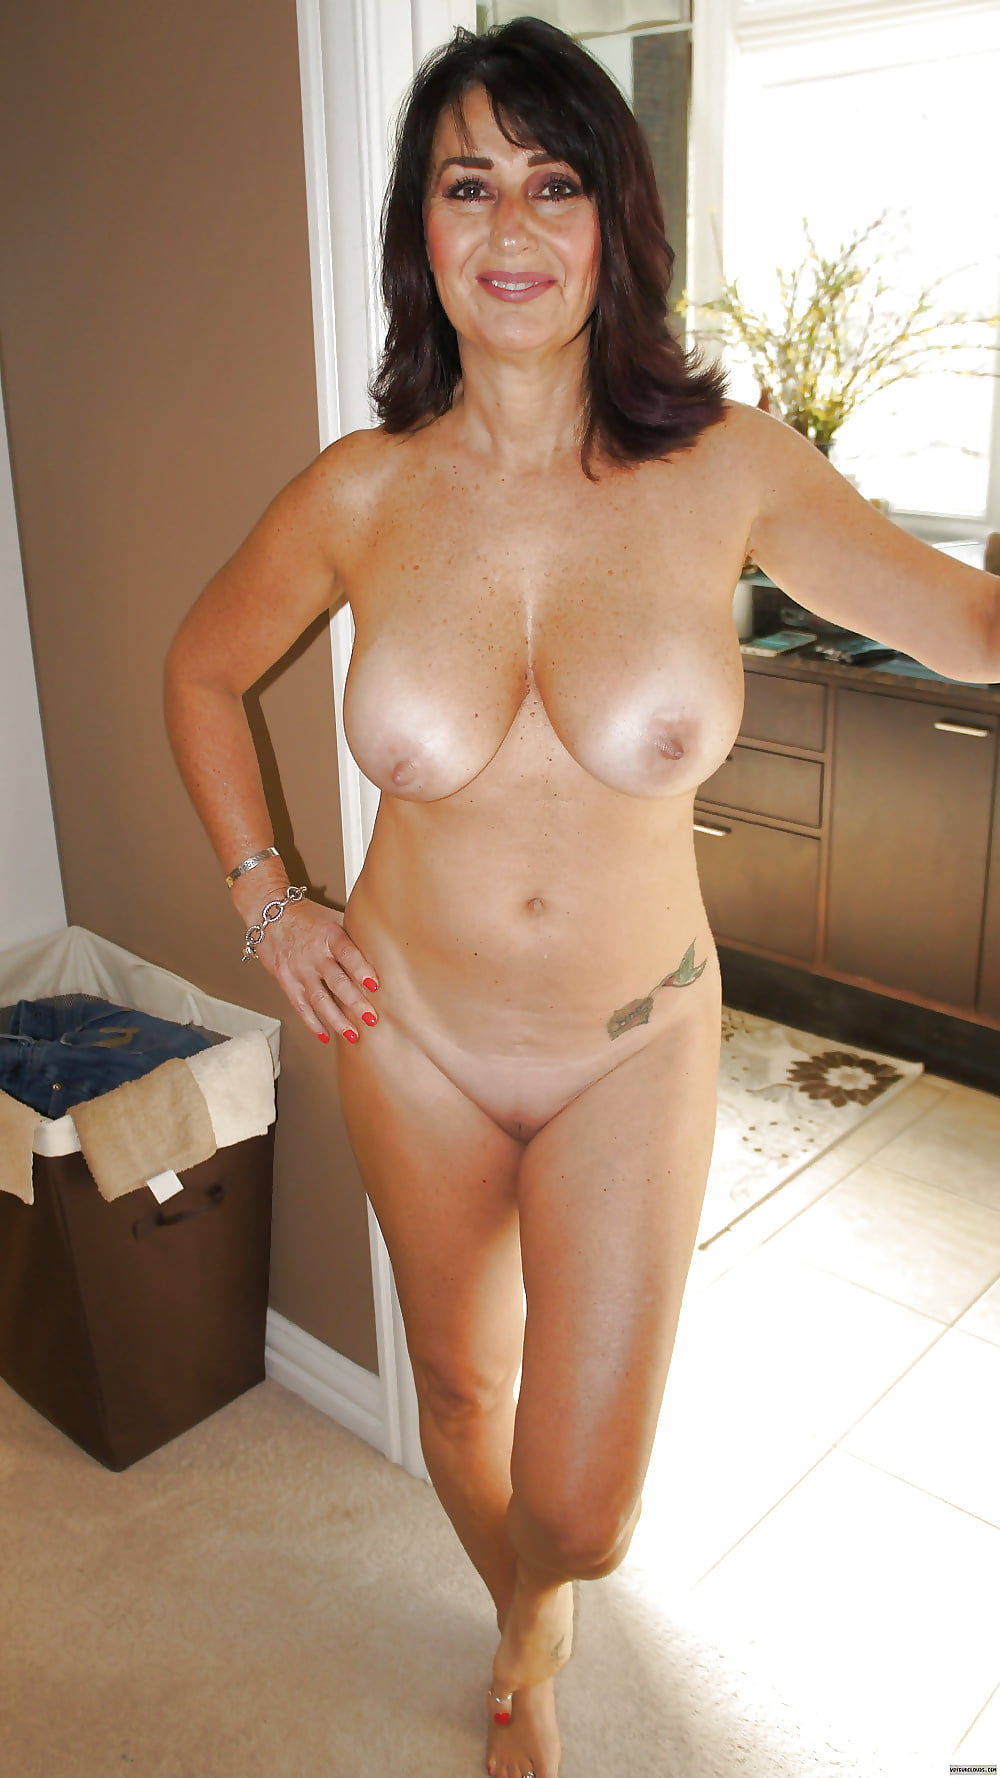 Awesome nude milf, what is a secret fetish